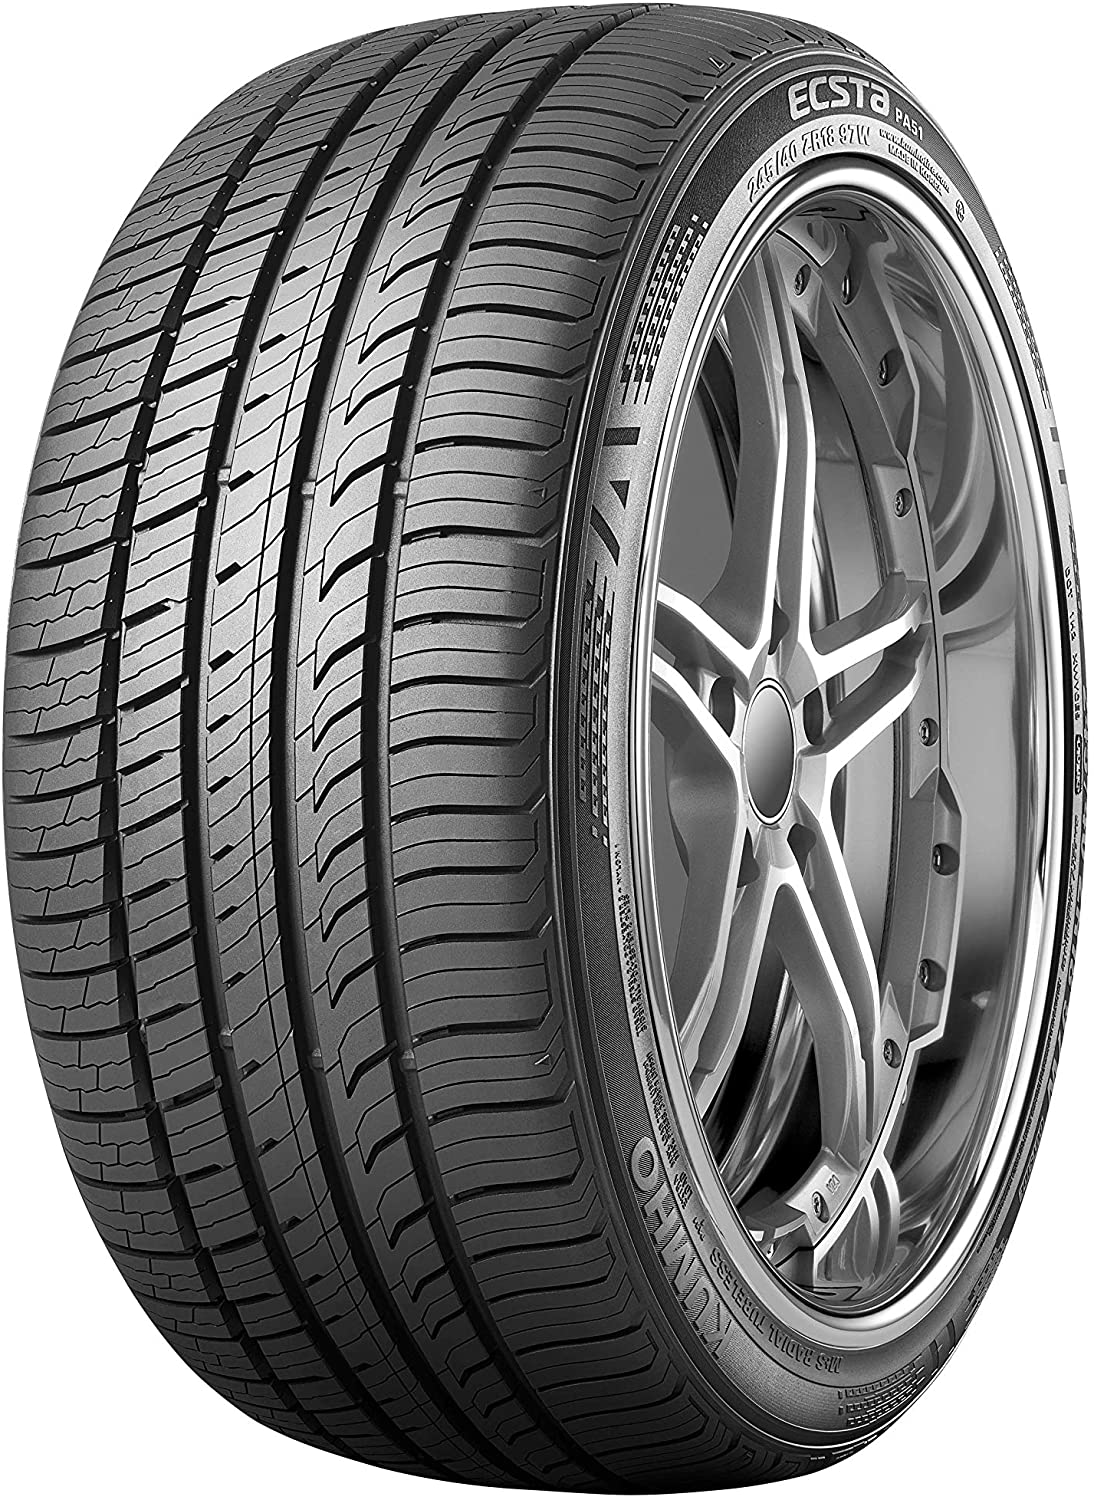 Kumho Ecsta All-Season Tire